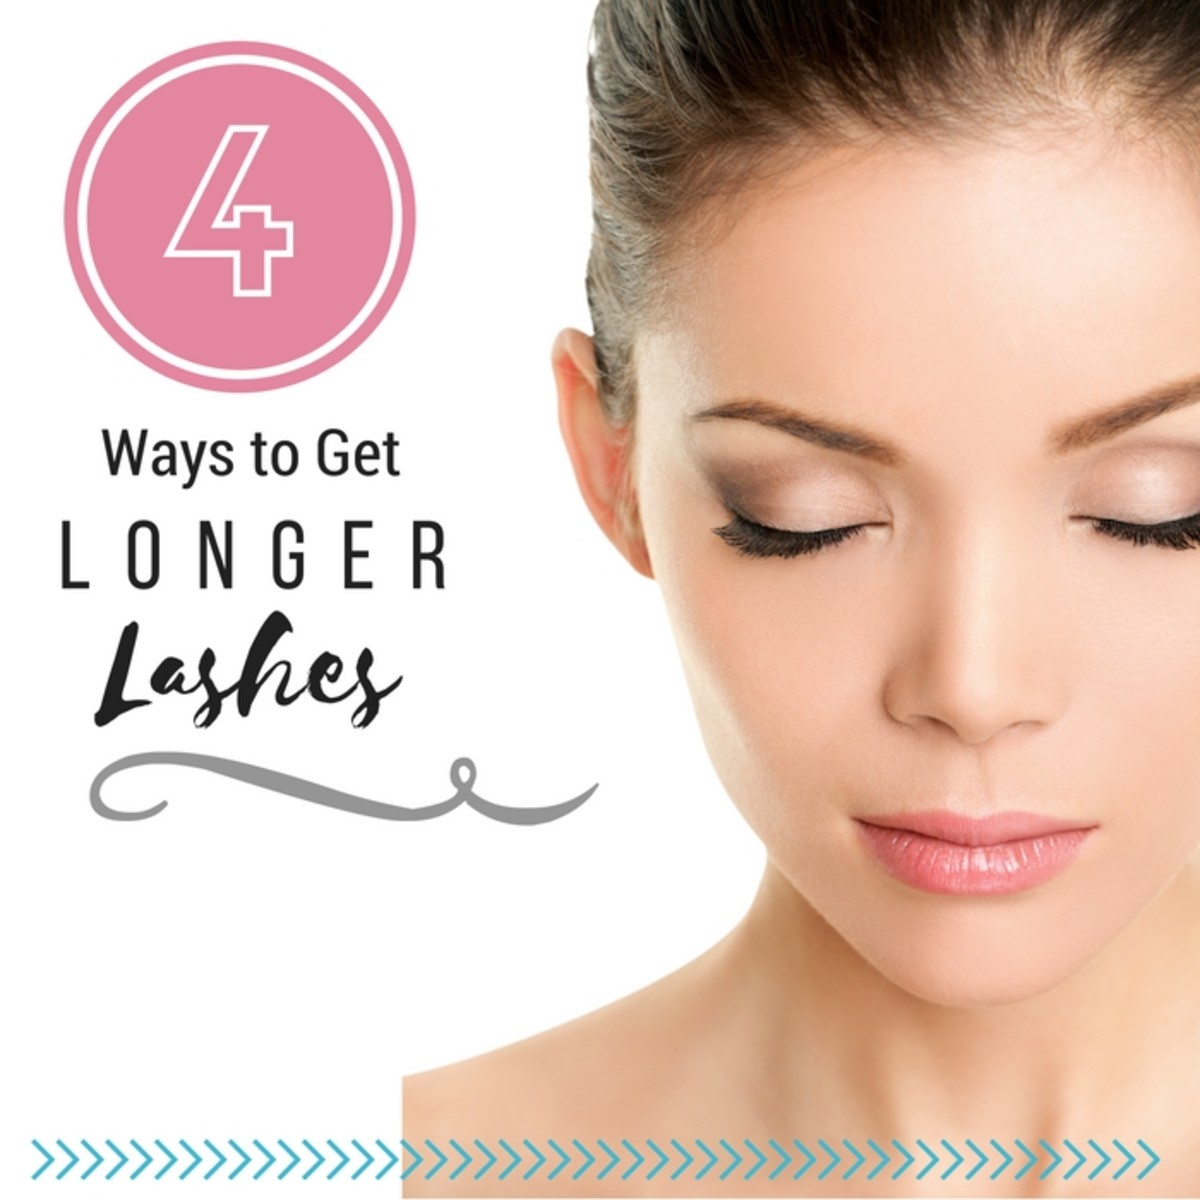 4 Ways to Get Longer Lashes